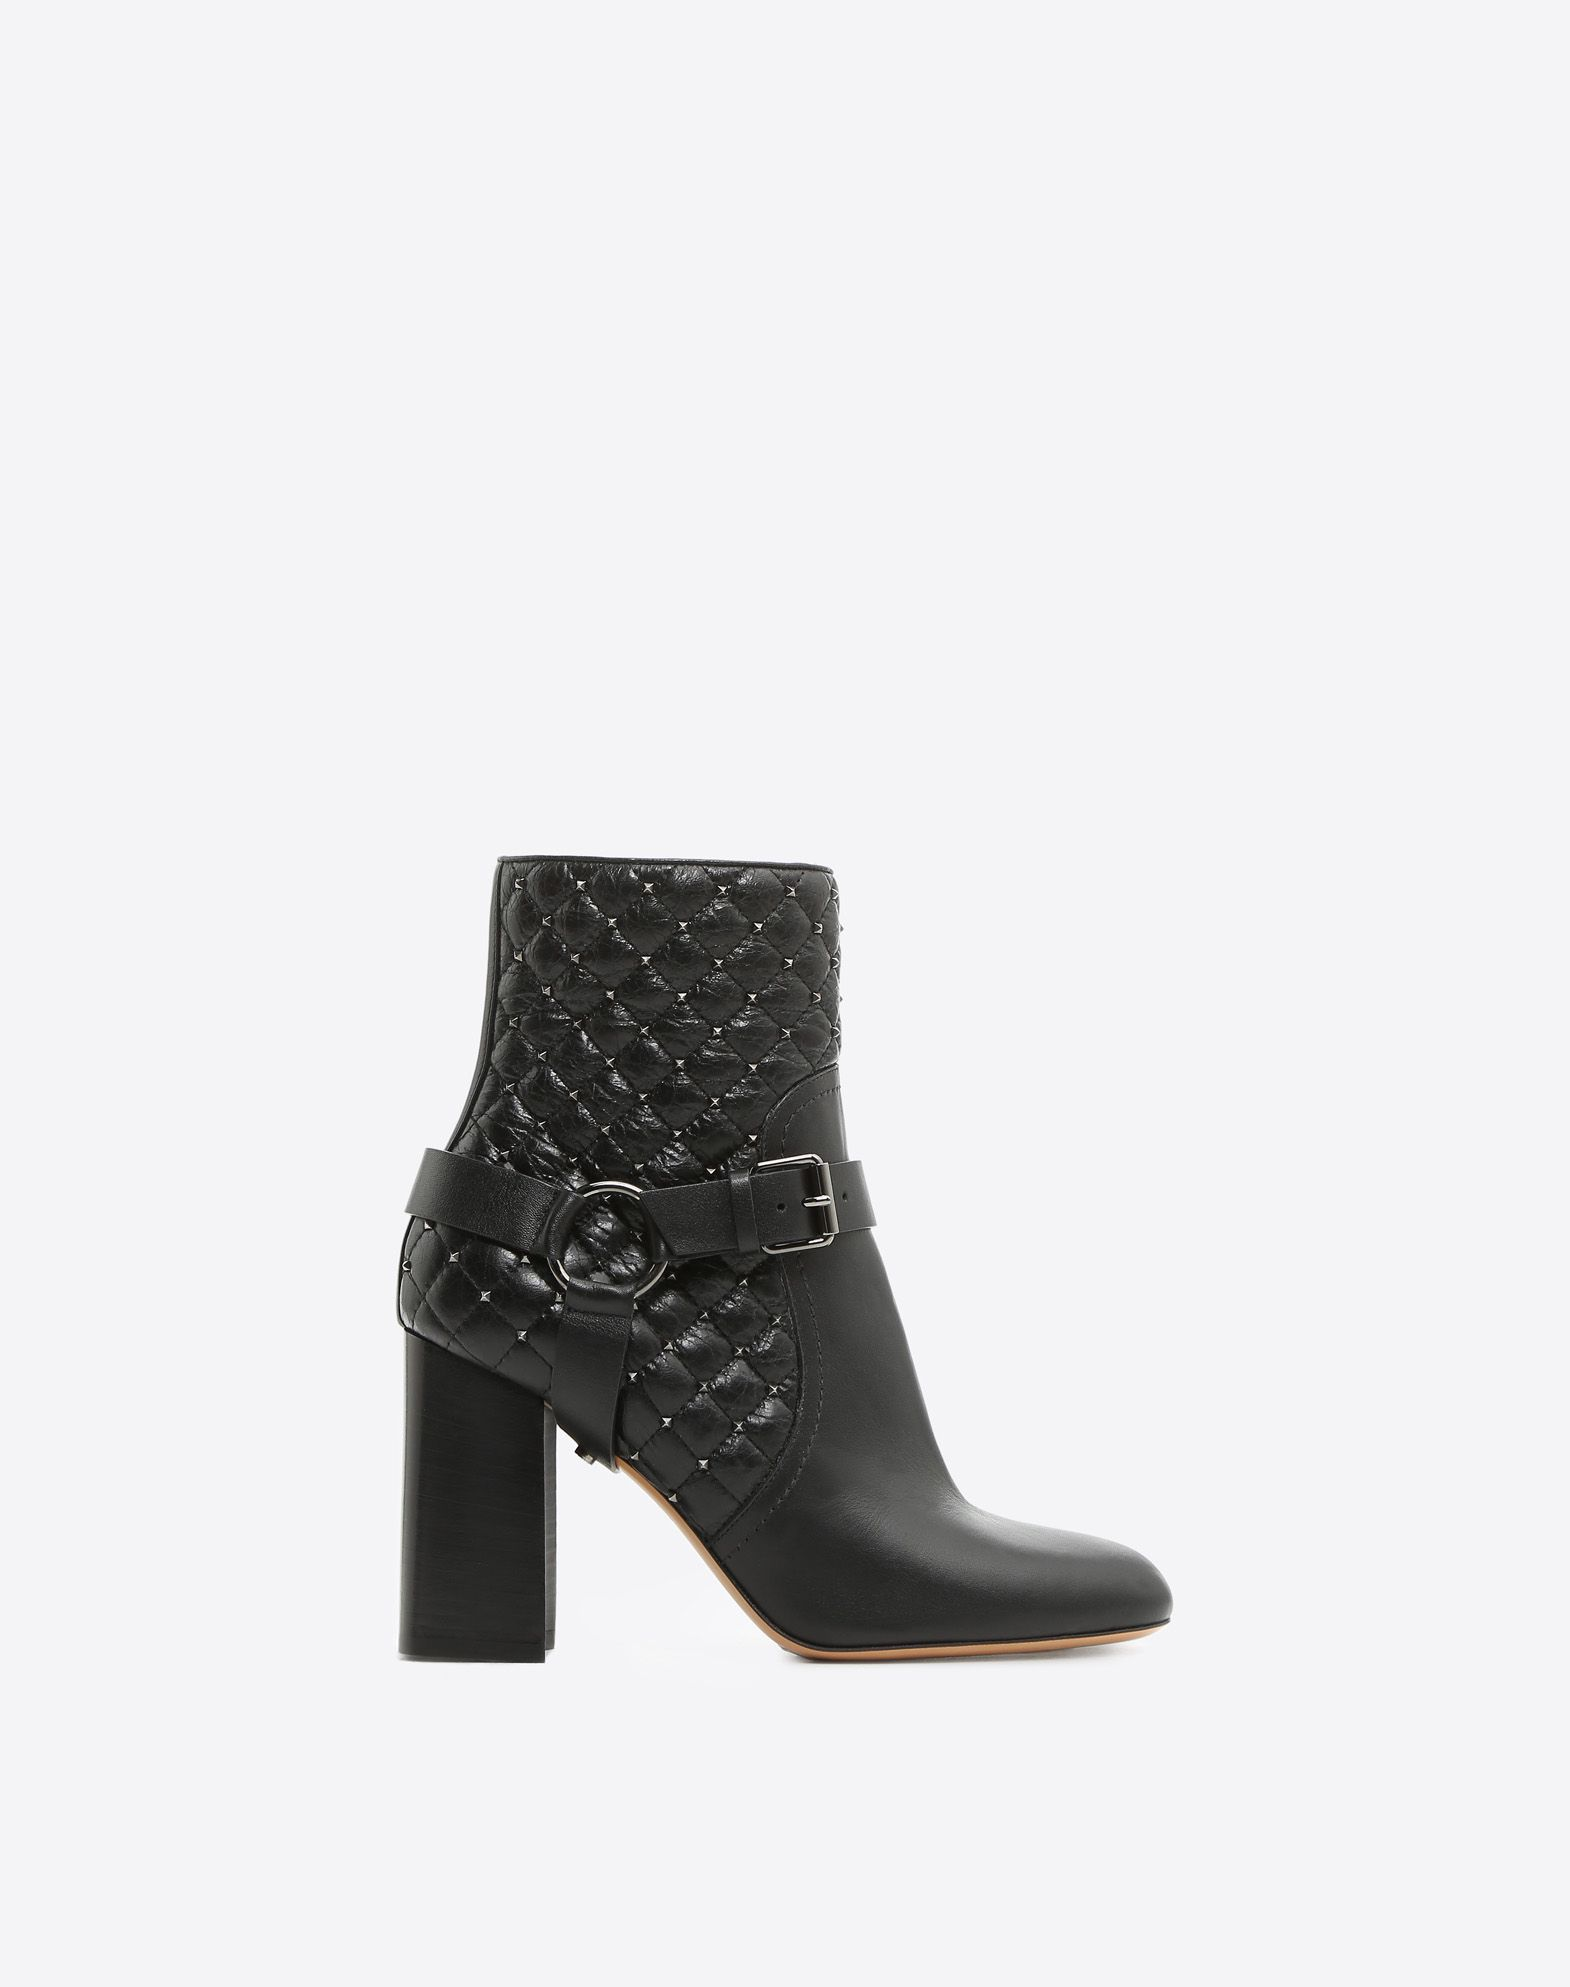 VALENTINO Round toeline Studs Inner zip closure Buckle Quilted Leather sole Geometric heel  45388454dv